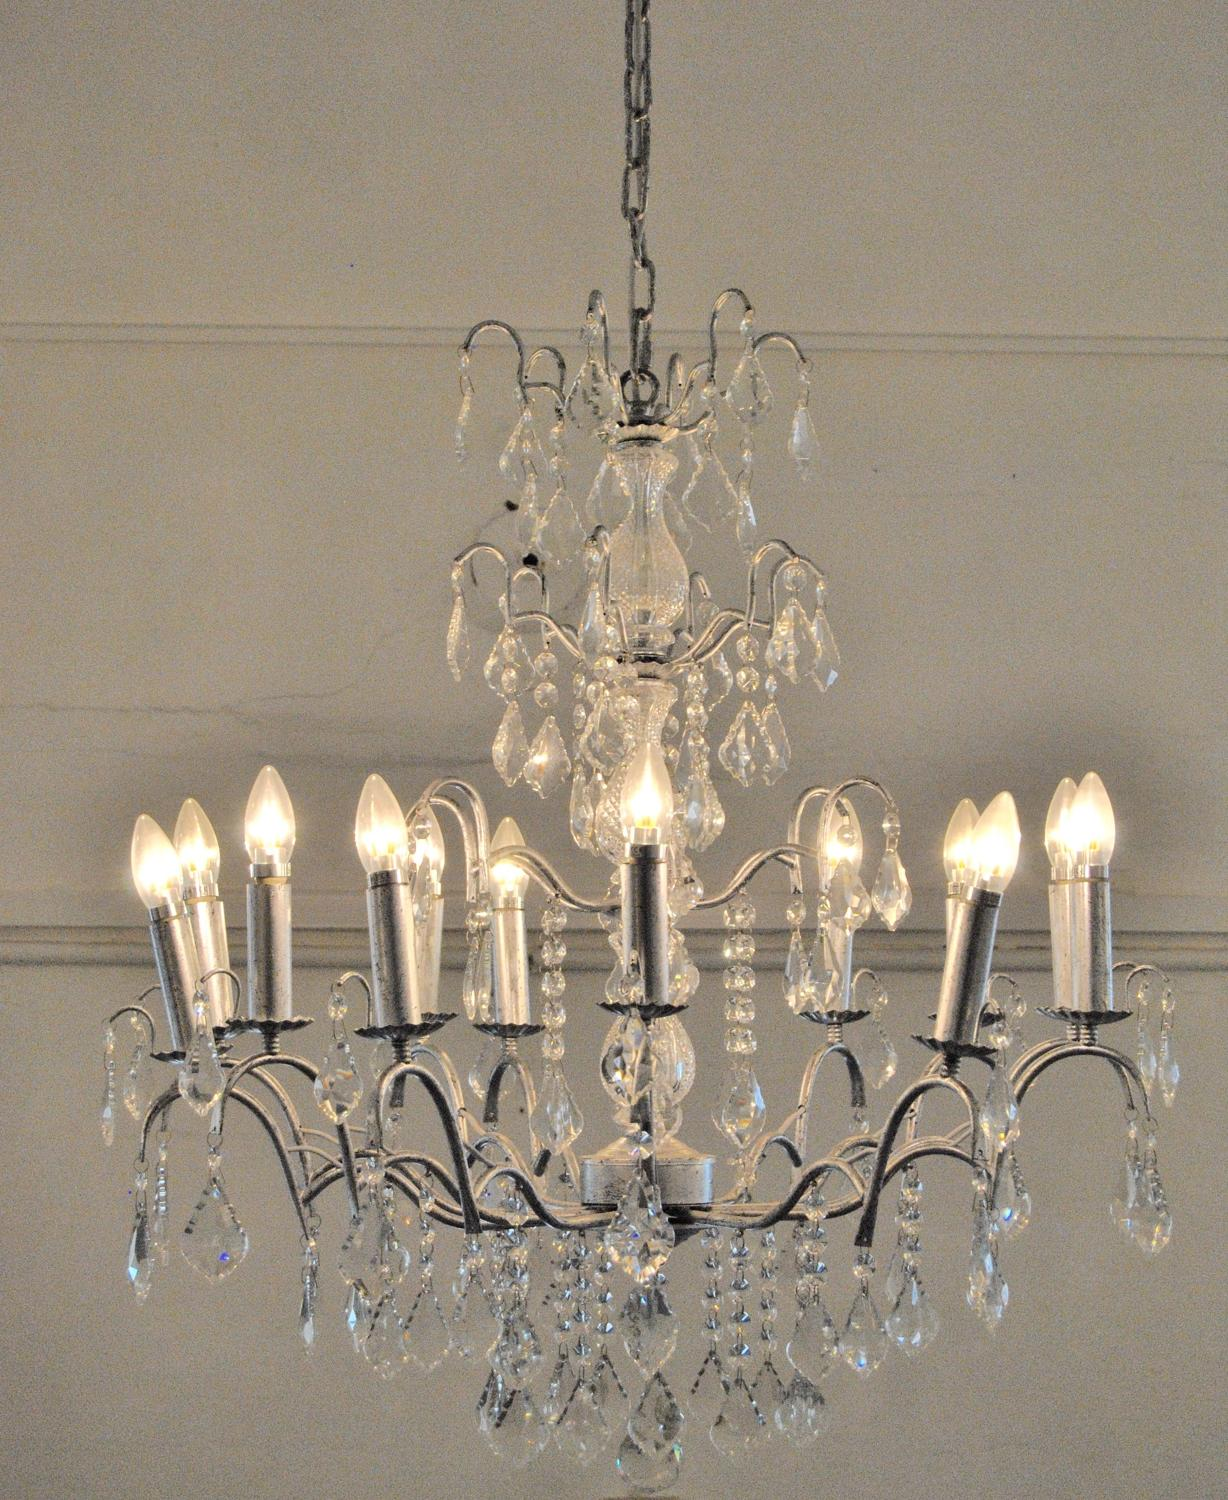 12 Branch Antique Silver Leaf Glass Chandelier